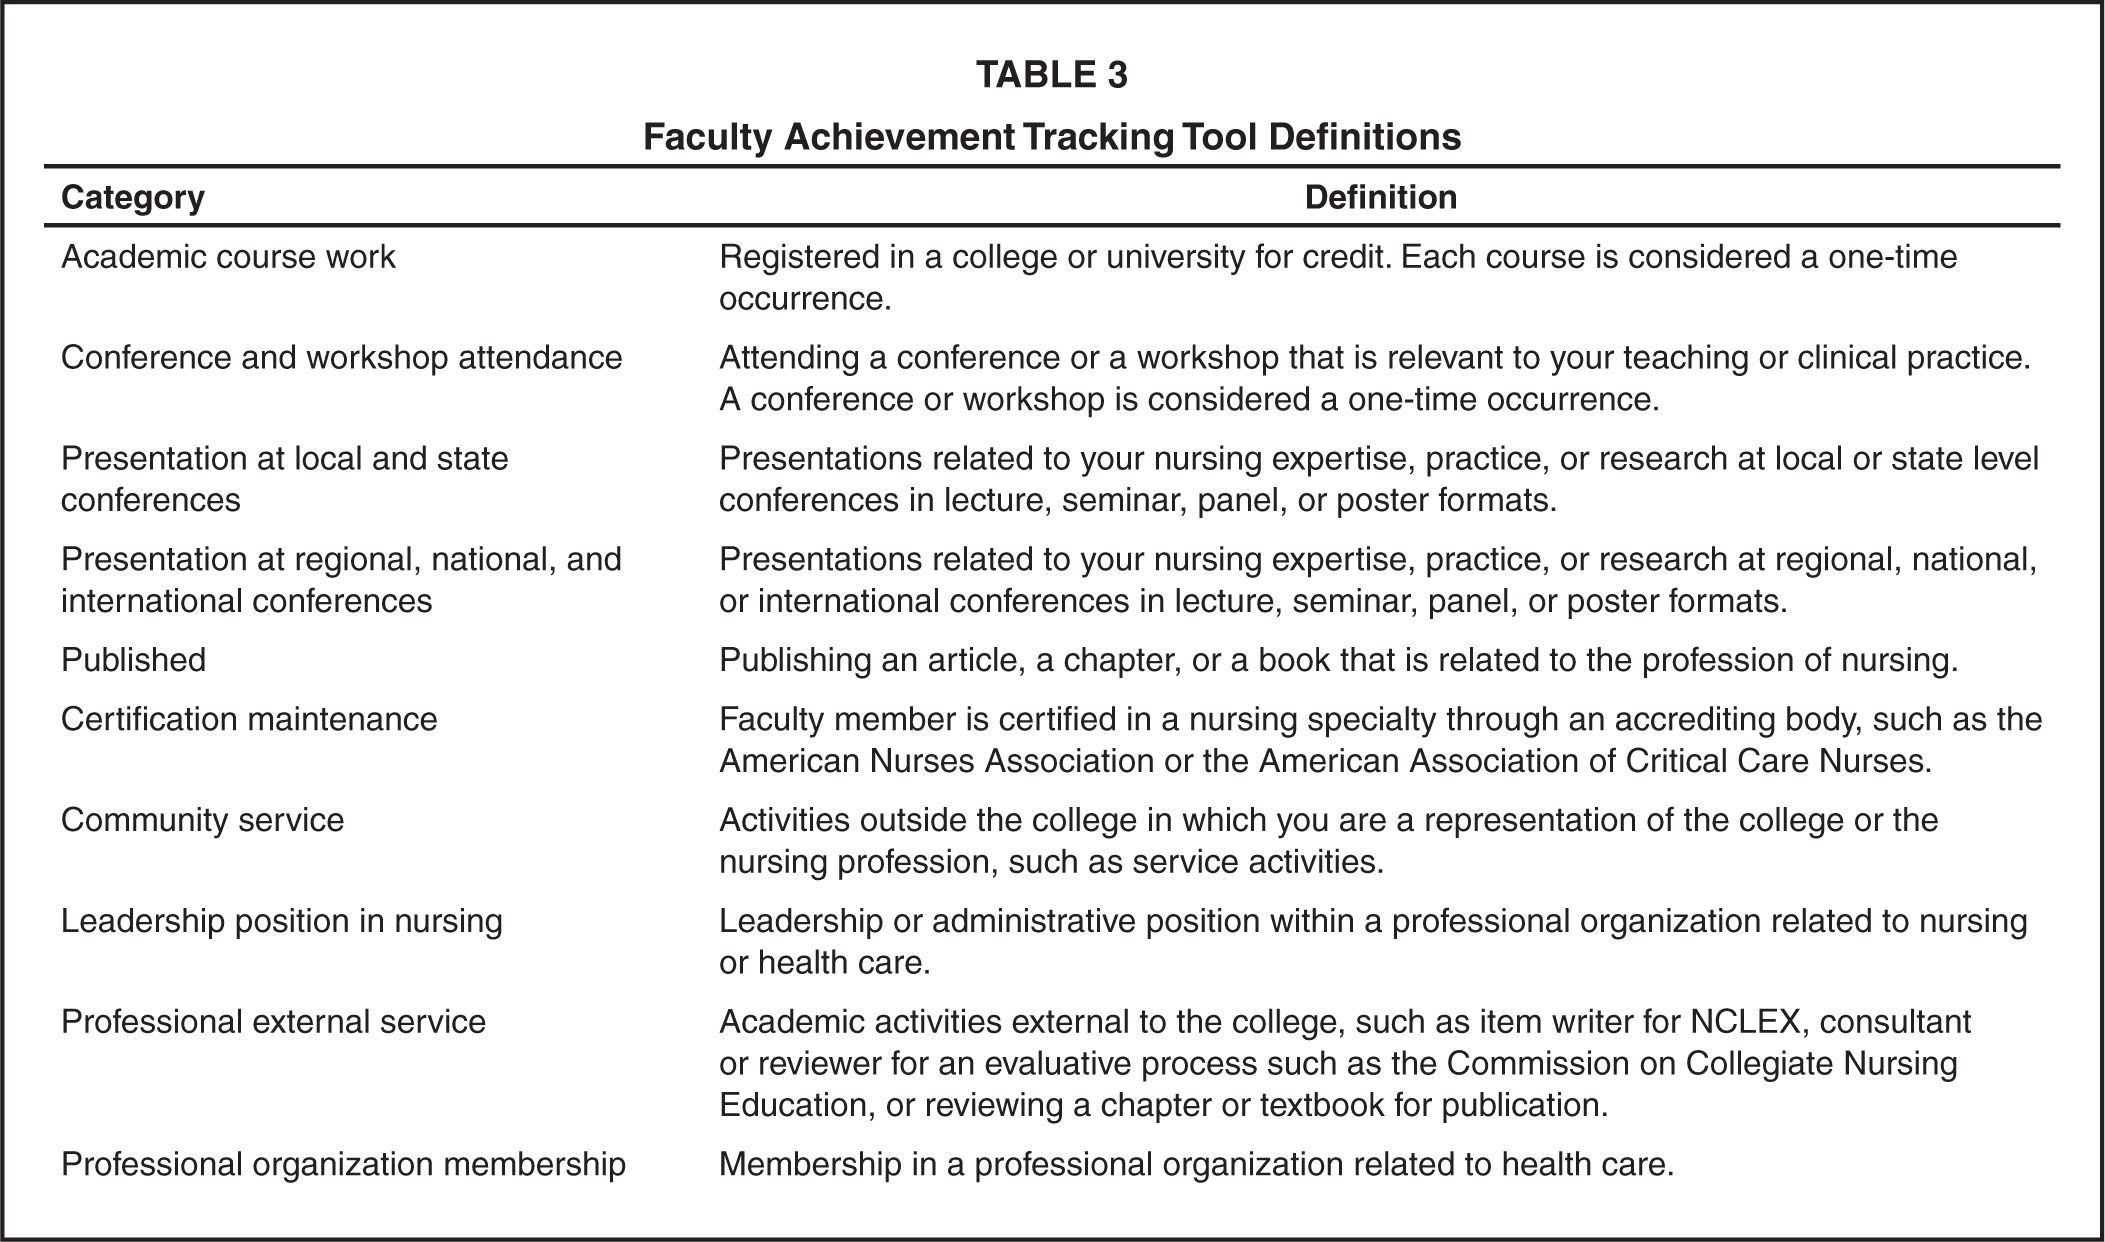 Faculty Achievement Tracking Tool Definitions